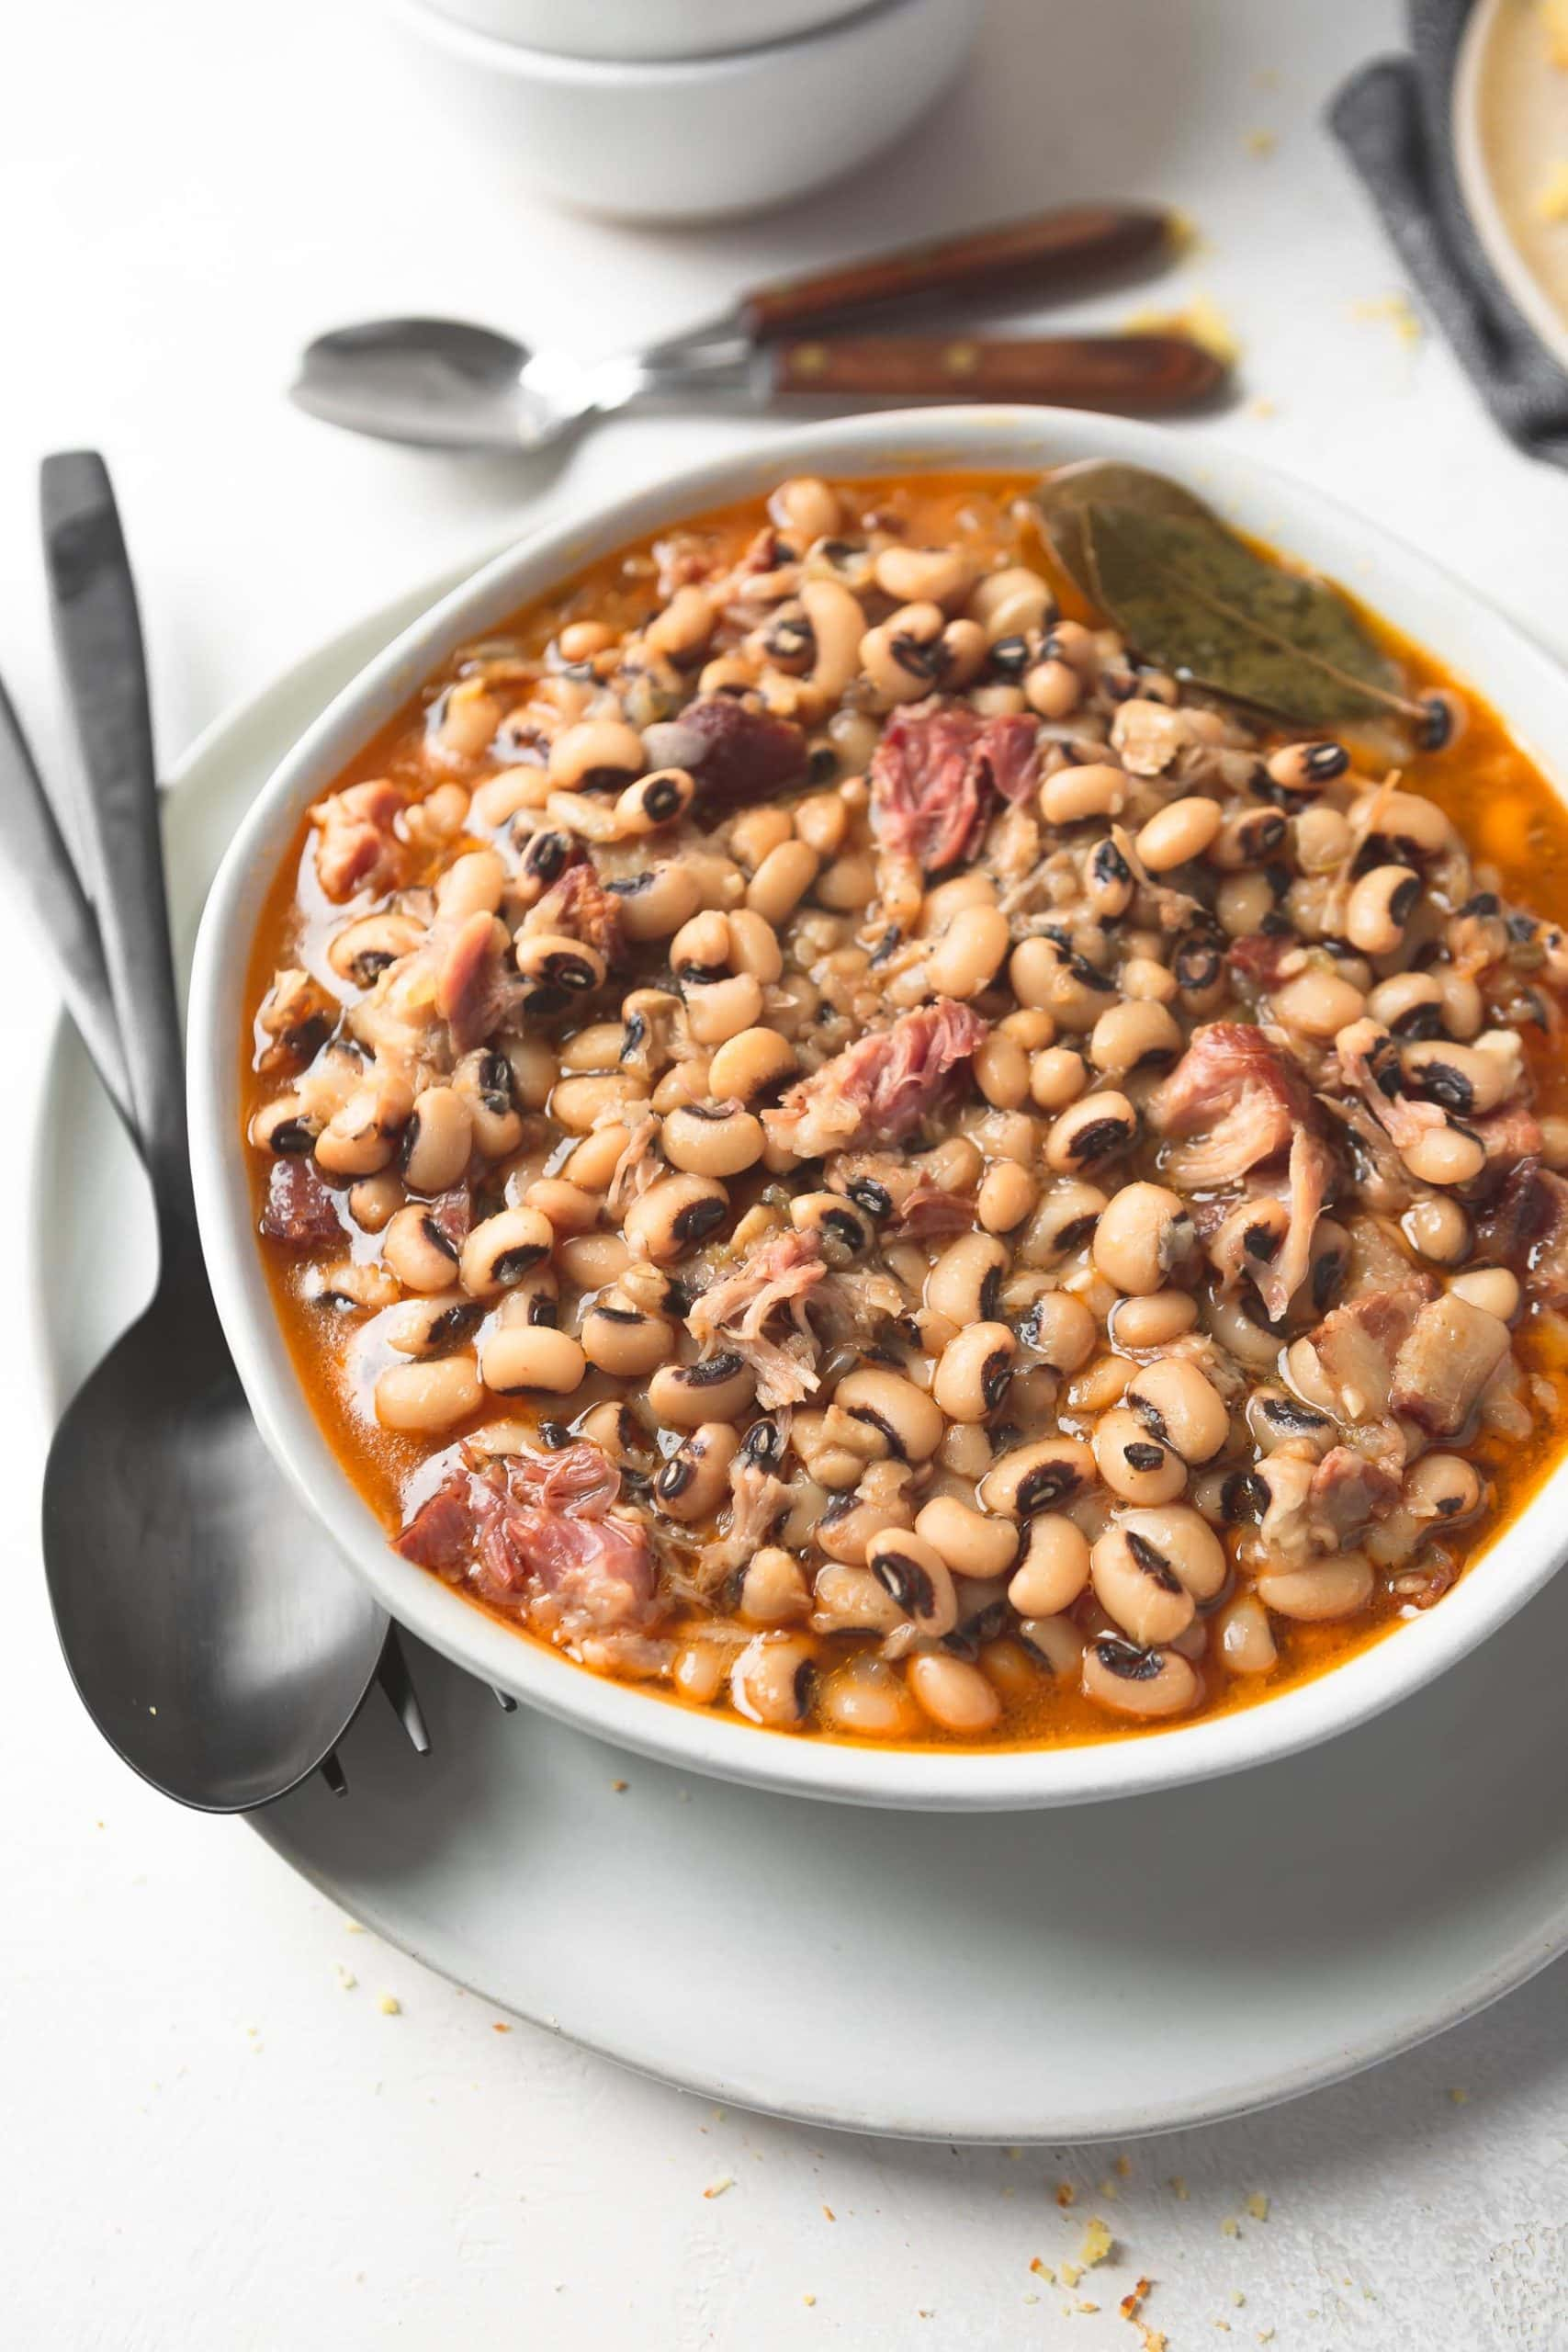 Black Eyed Peas Recipe for New Years - Oh Sweet Basil